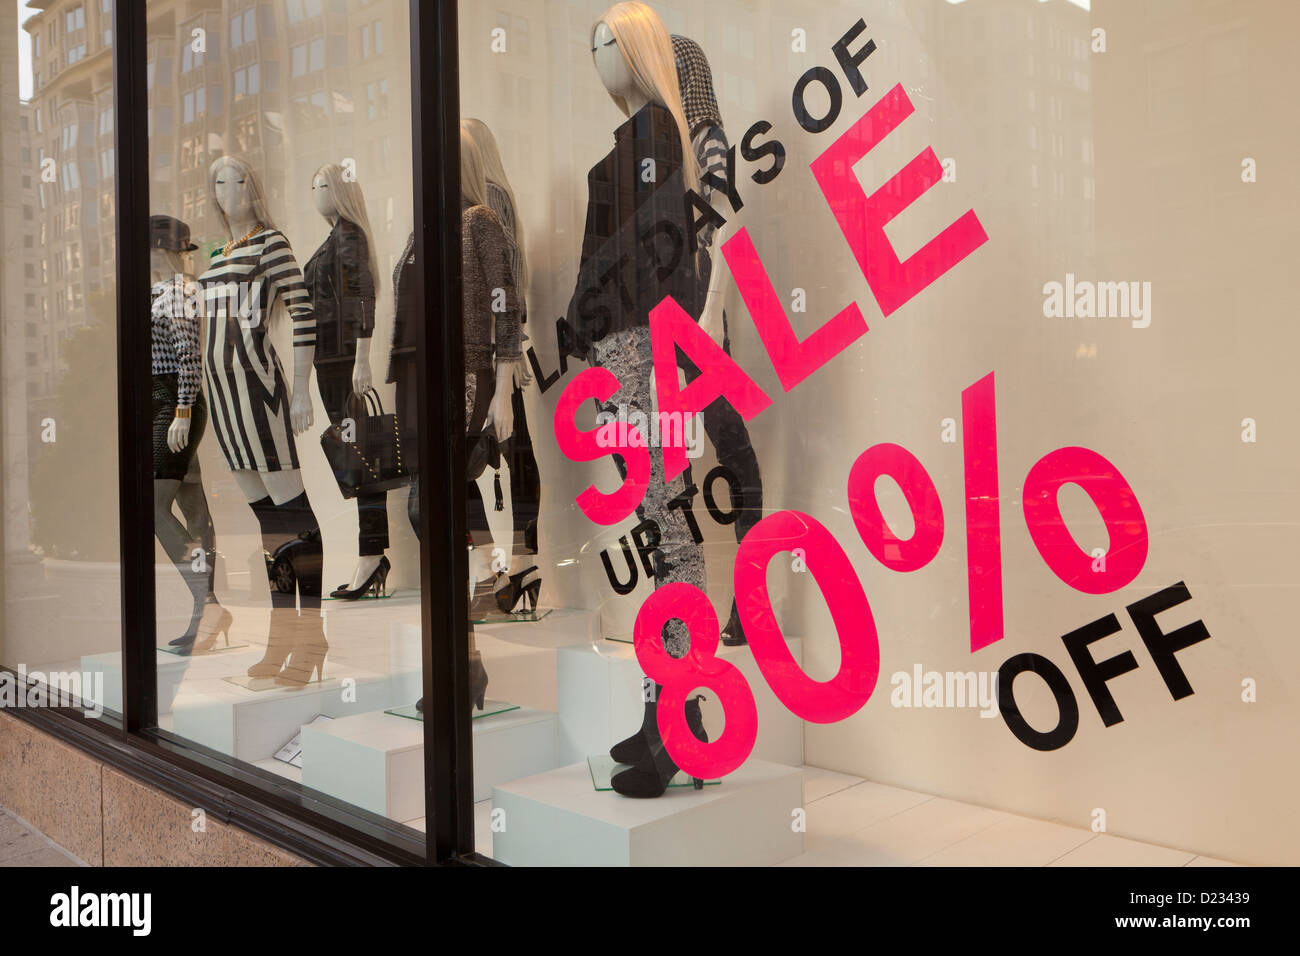 80% off sale sign on clothing store window display - USA - Stock Image